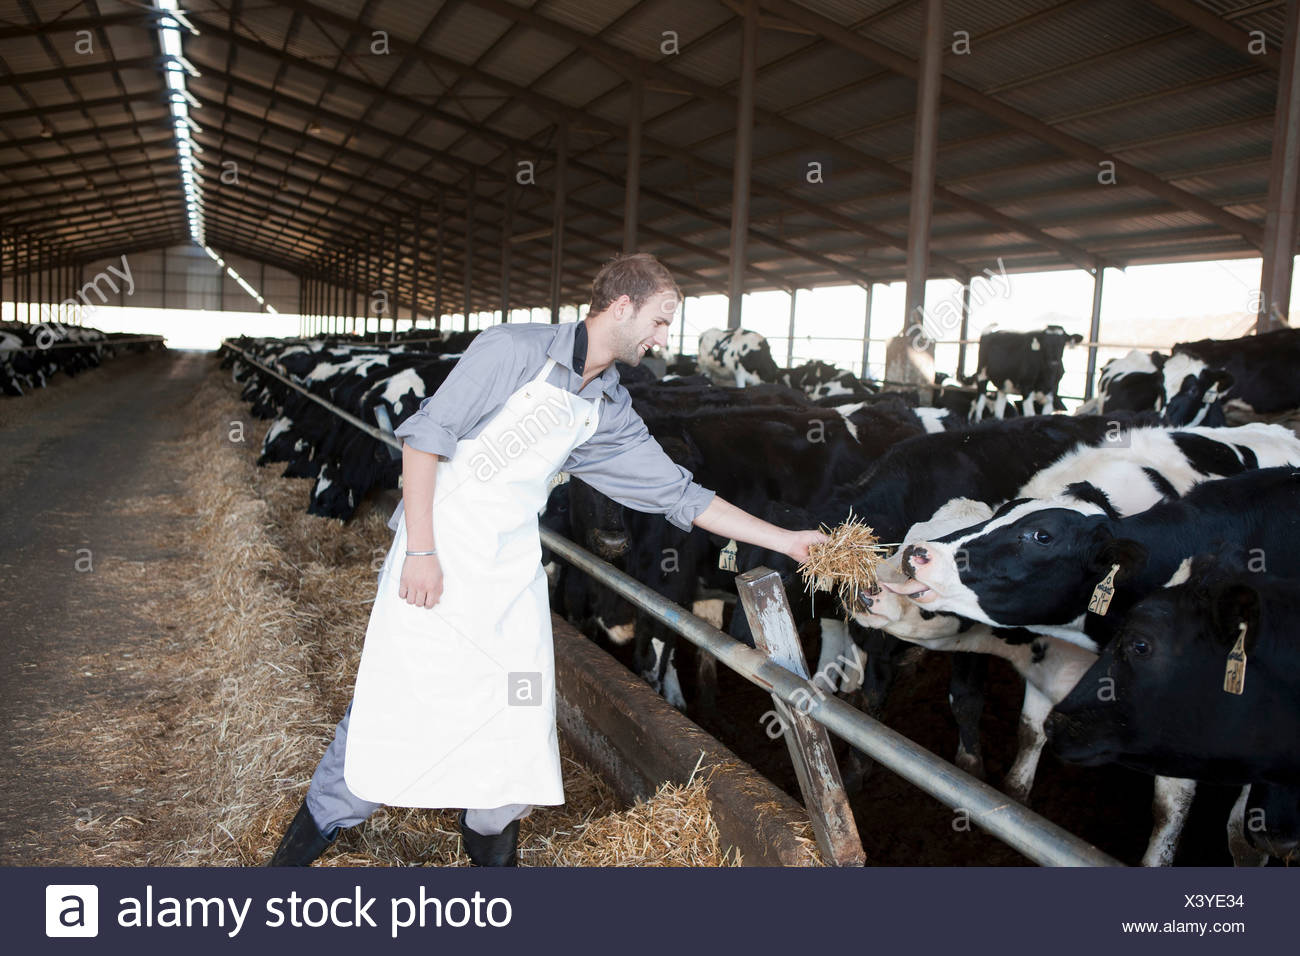 Worker feeding cows at dairy farm - Stock Image